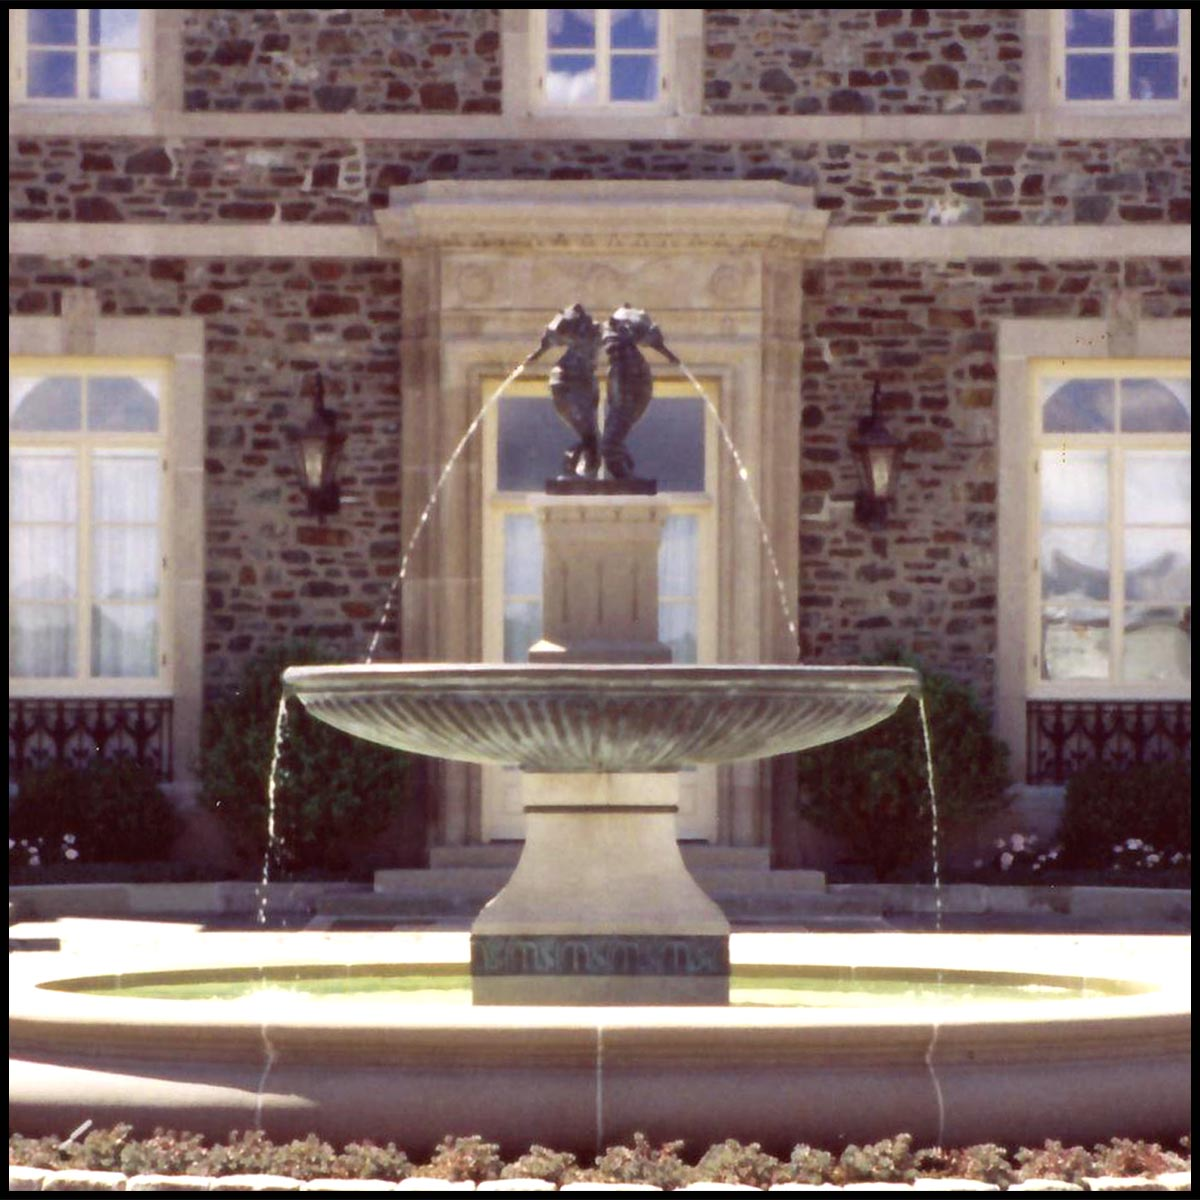 photo of granite fountain topped with bronze sculpture of two seahorses spouting water in front of a brick house